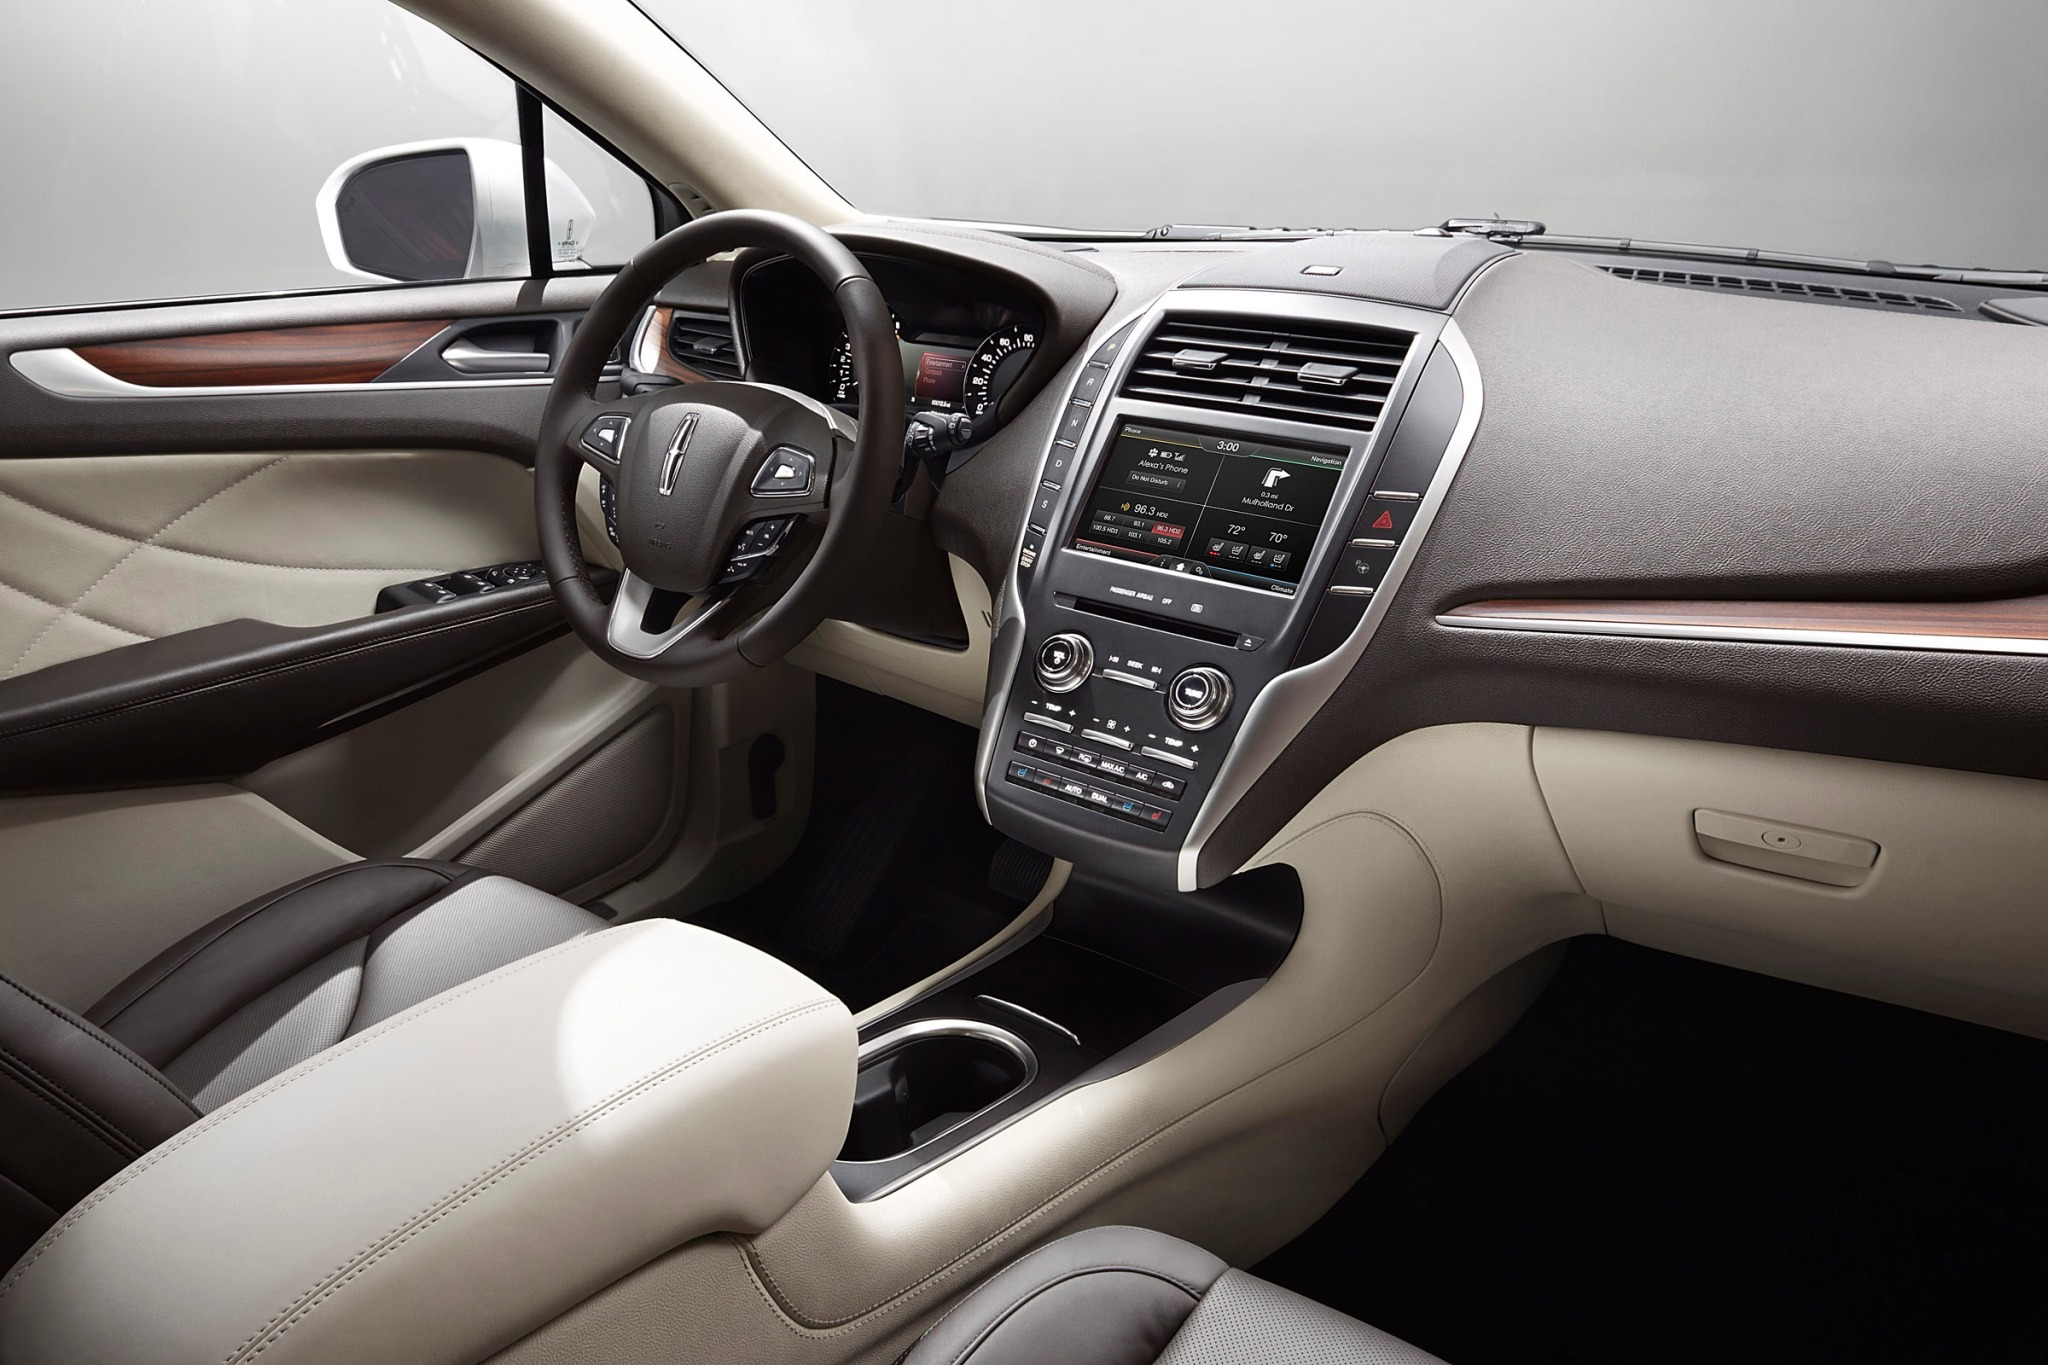 2015 Lincoln MKC 4dr SUV  exterior #8